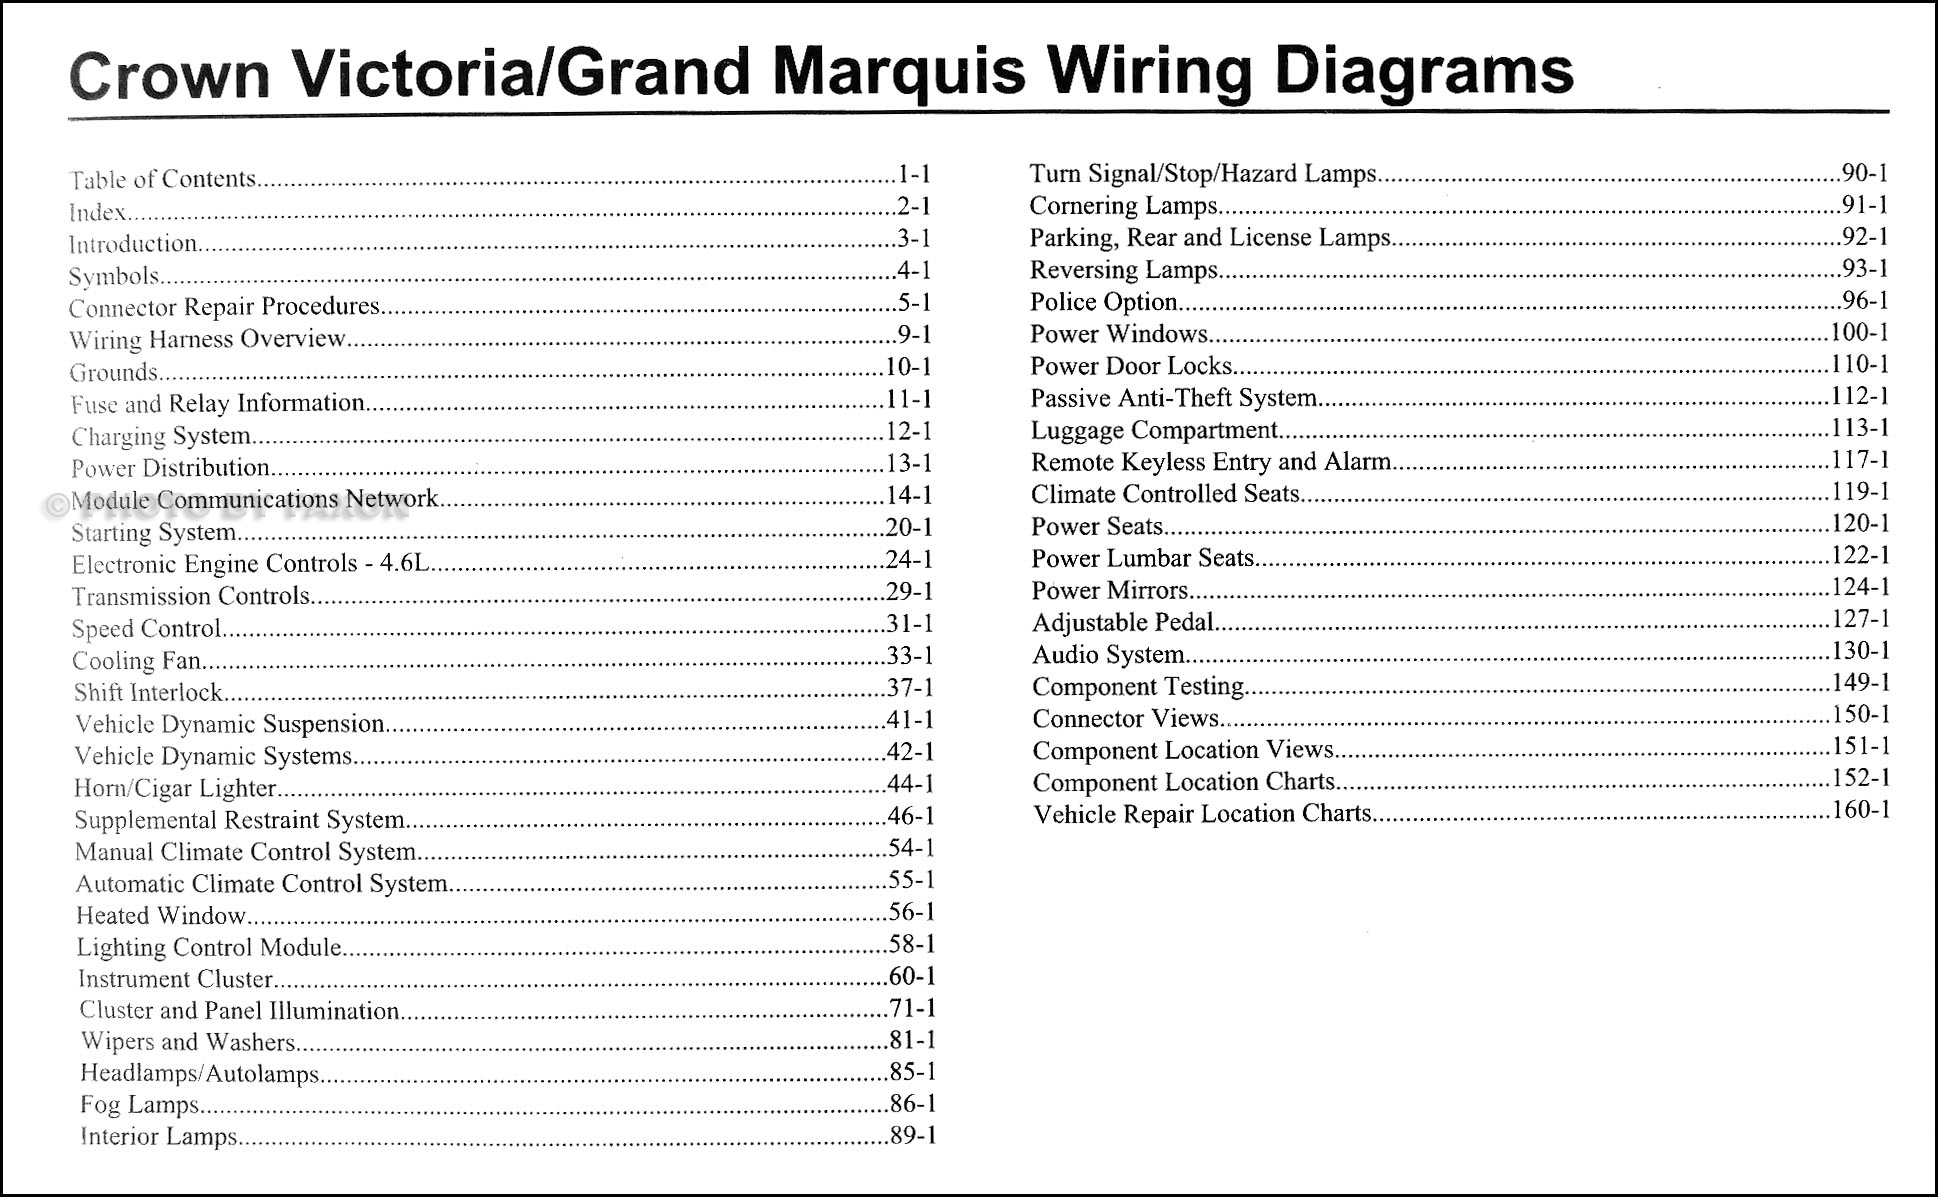 2009FordCrownVictoriaOWD TOC 2009 crown victoria & grand marquis original wiring diagram manual 2006 ford crown victoria wiring diagram at crackthecode.co